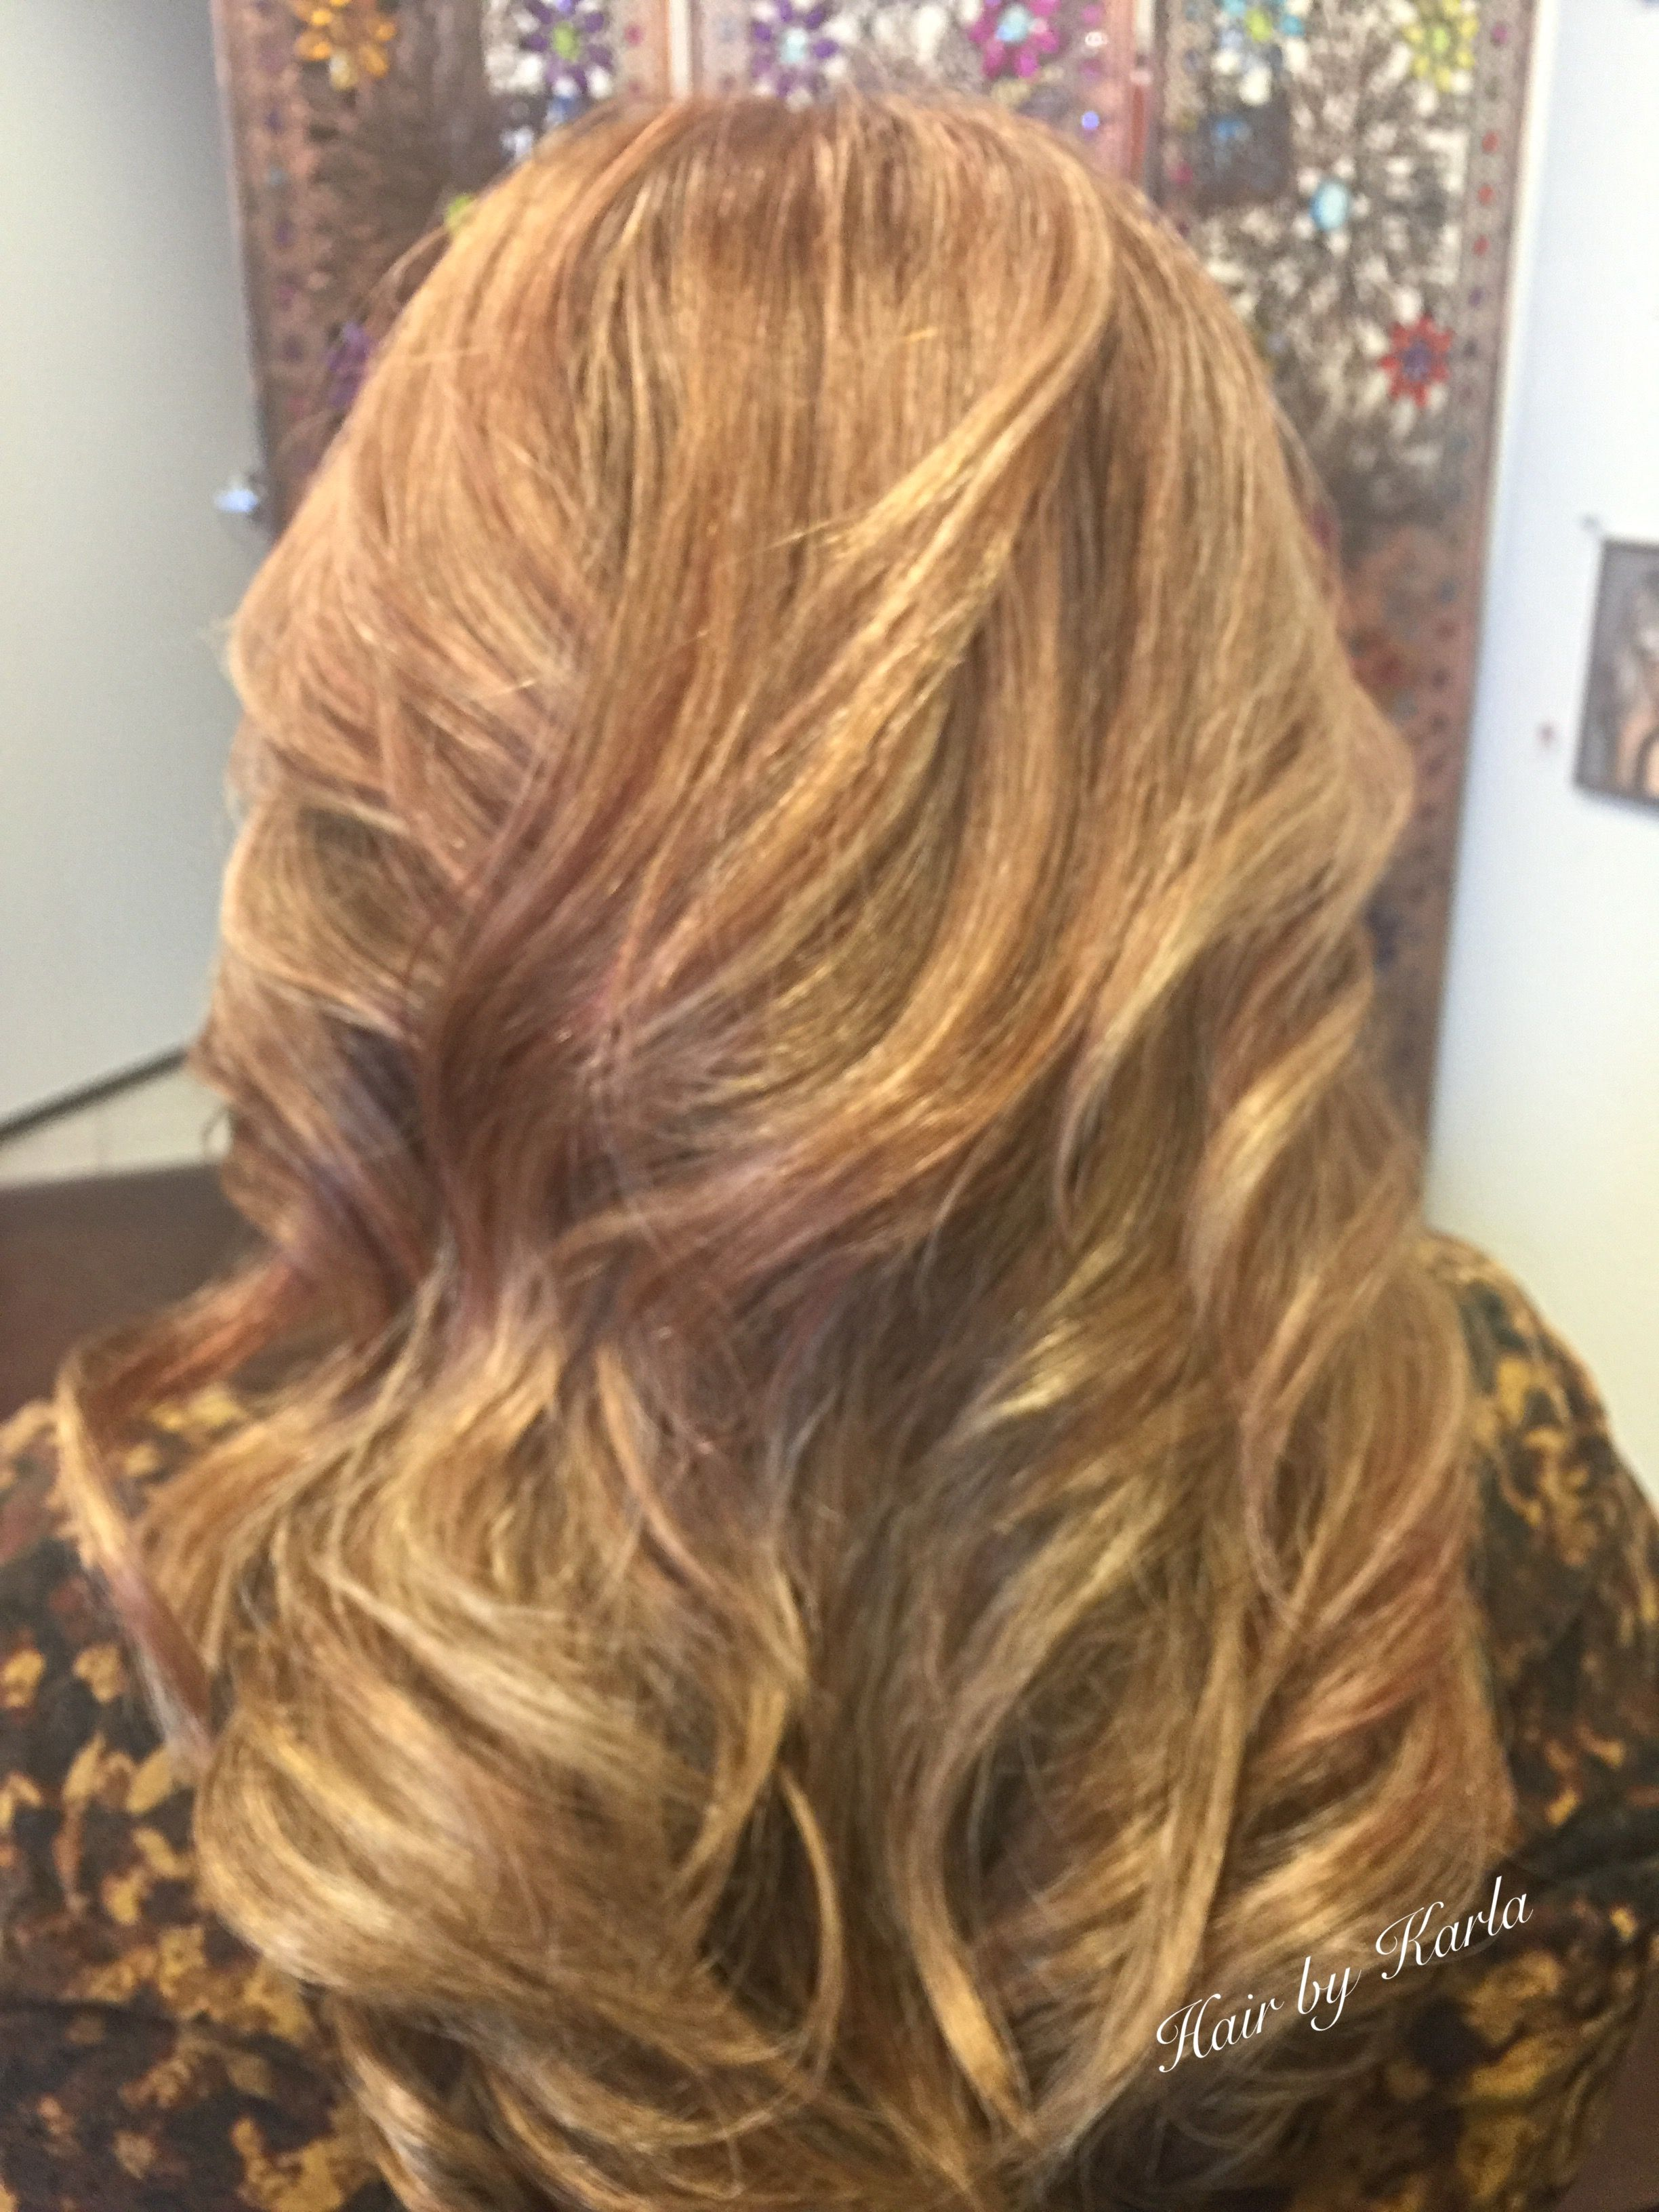 Pin by Karla Isbell on Color u Hair Painting by Karla Isbell